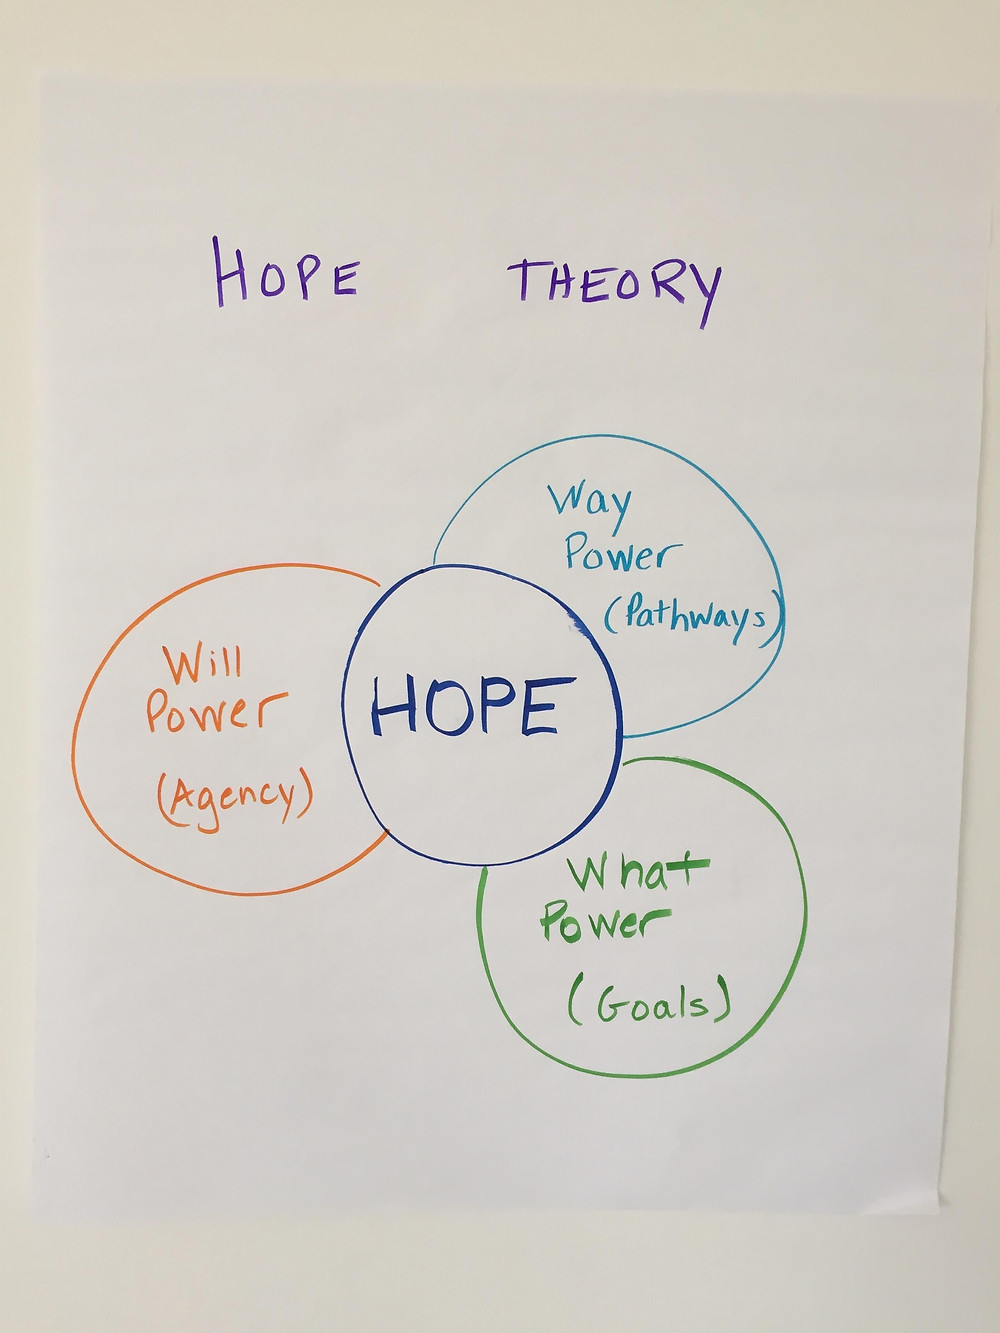 Hope Theory helps identify ways to move forward - pathways, agency and goals.